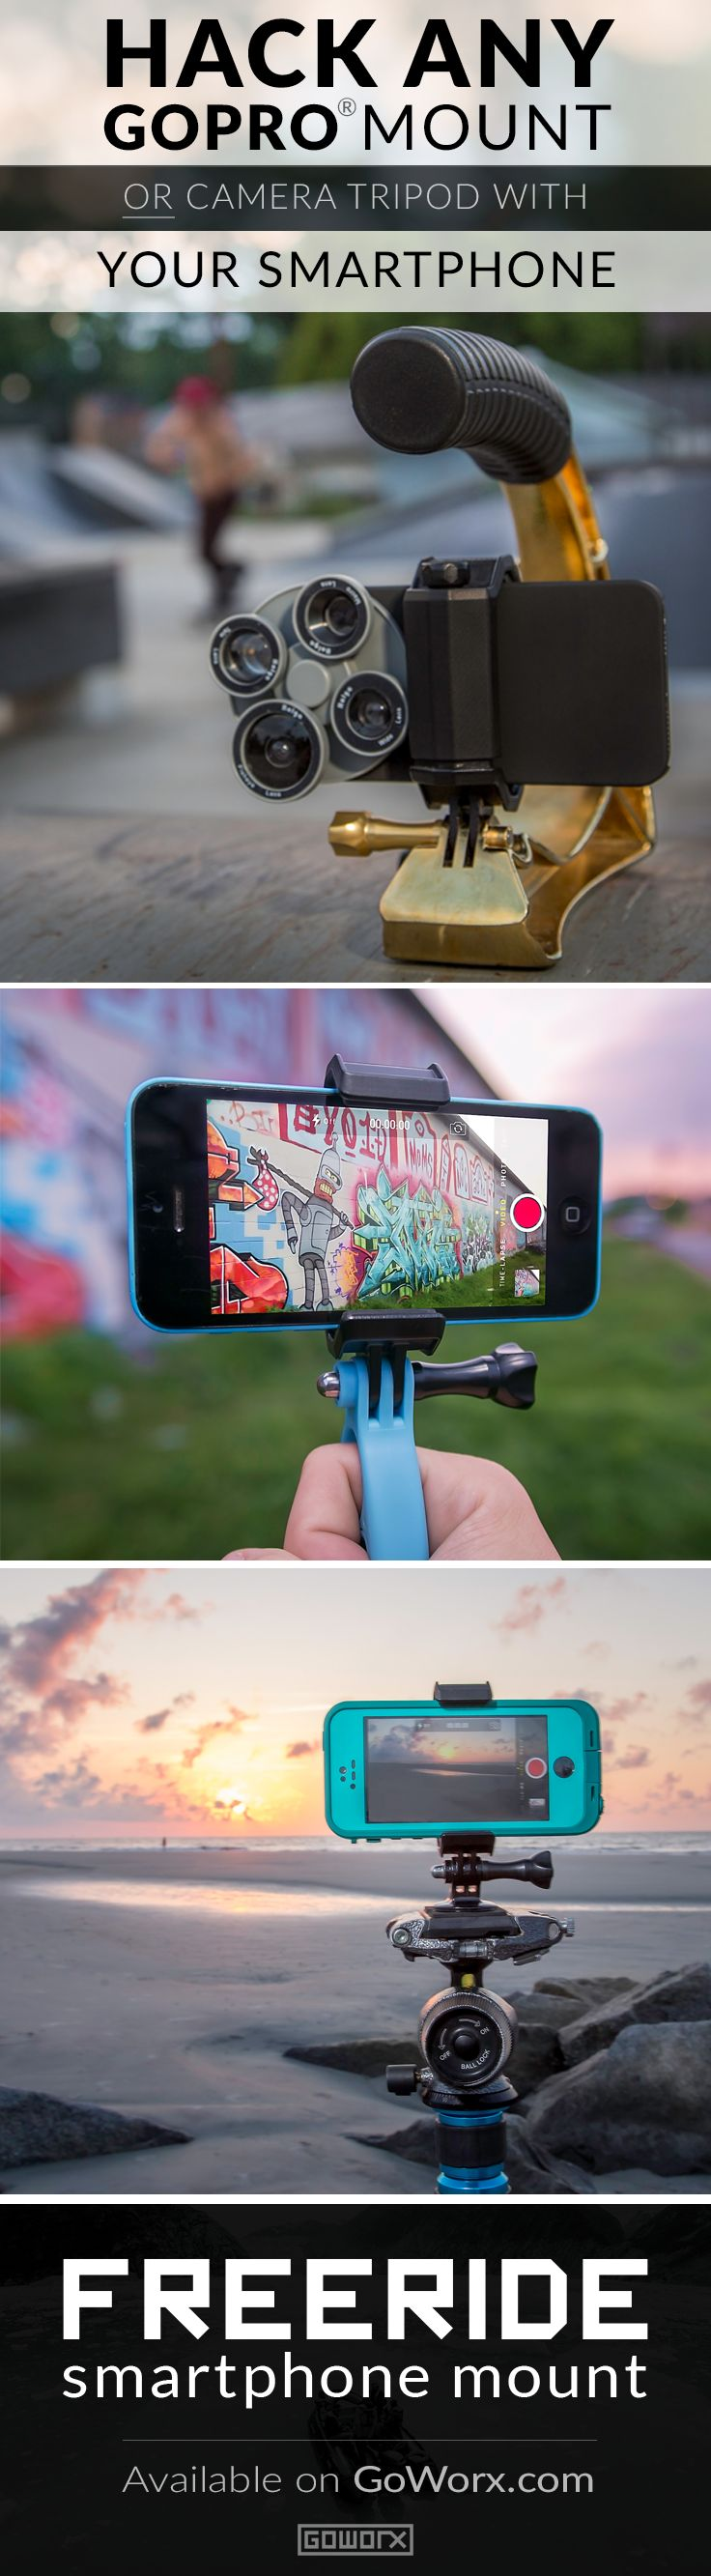 [Gadgets & Gear] The FreeRide Phone Mount transforms your iPhone® or smartphone into an versatile and mountable camera capable of handling all of life's adventures. Available today for $24.99 and backed by our 100% Gear Guarantee. // Your source for GoPro, Drone & Mobile Gear // www.GoWorx.com